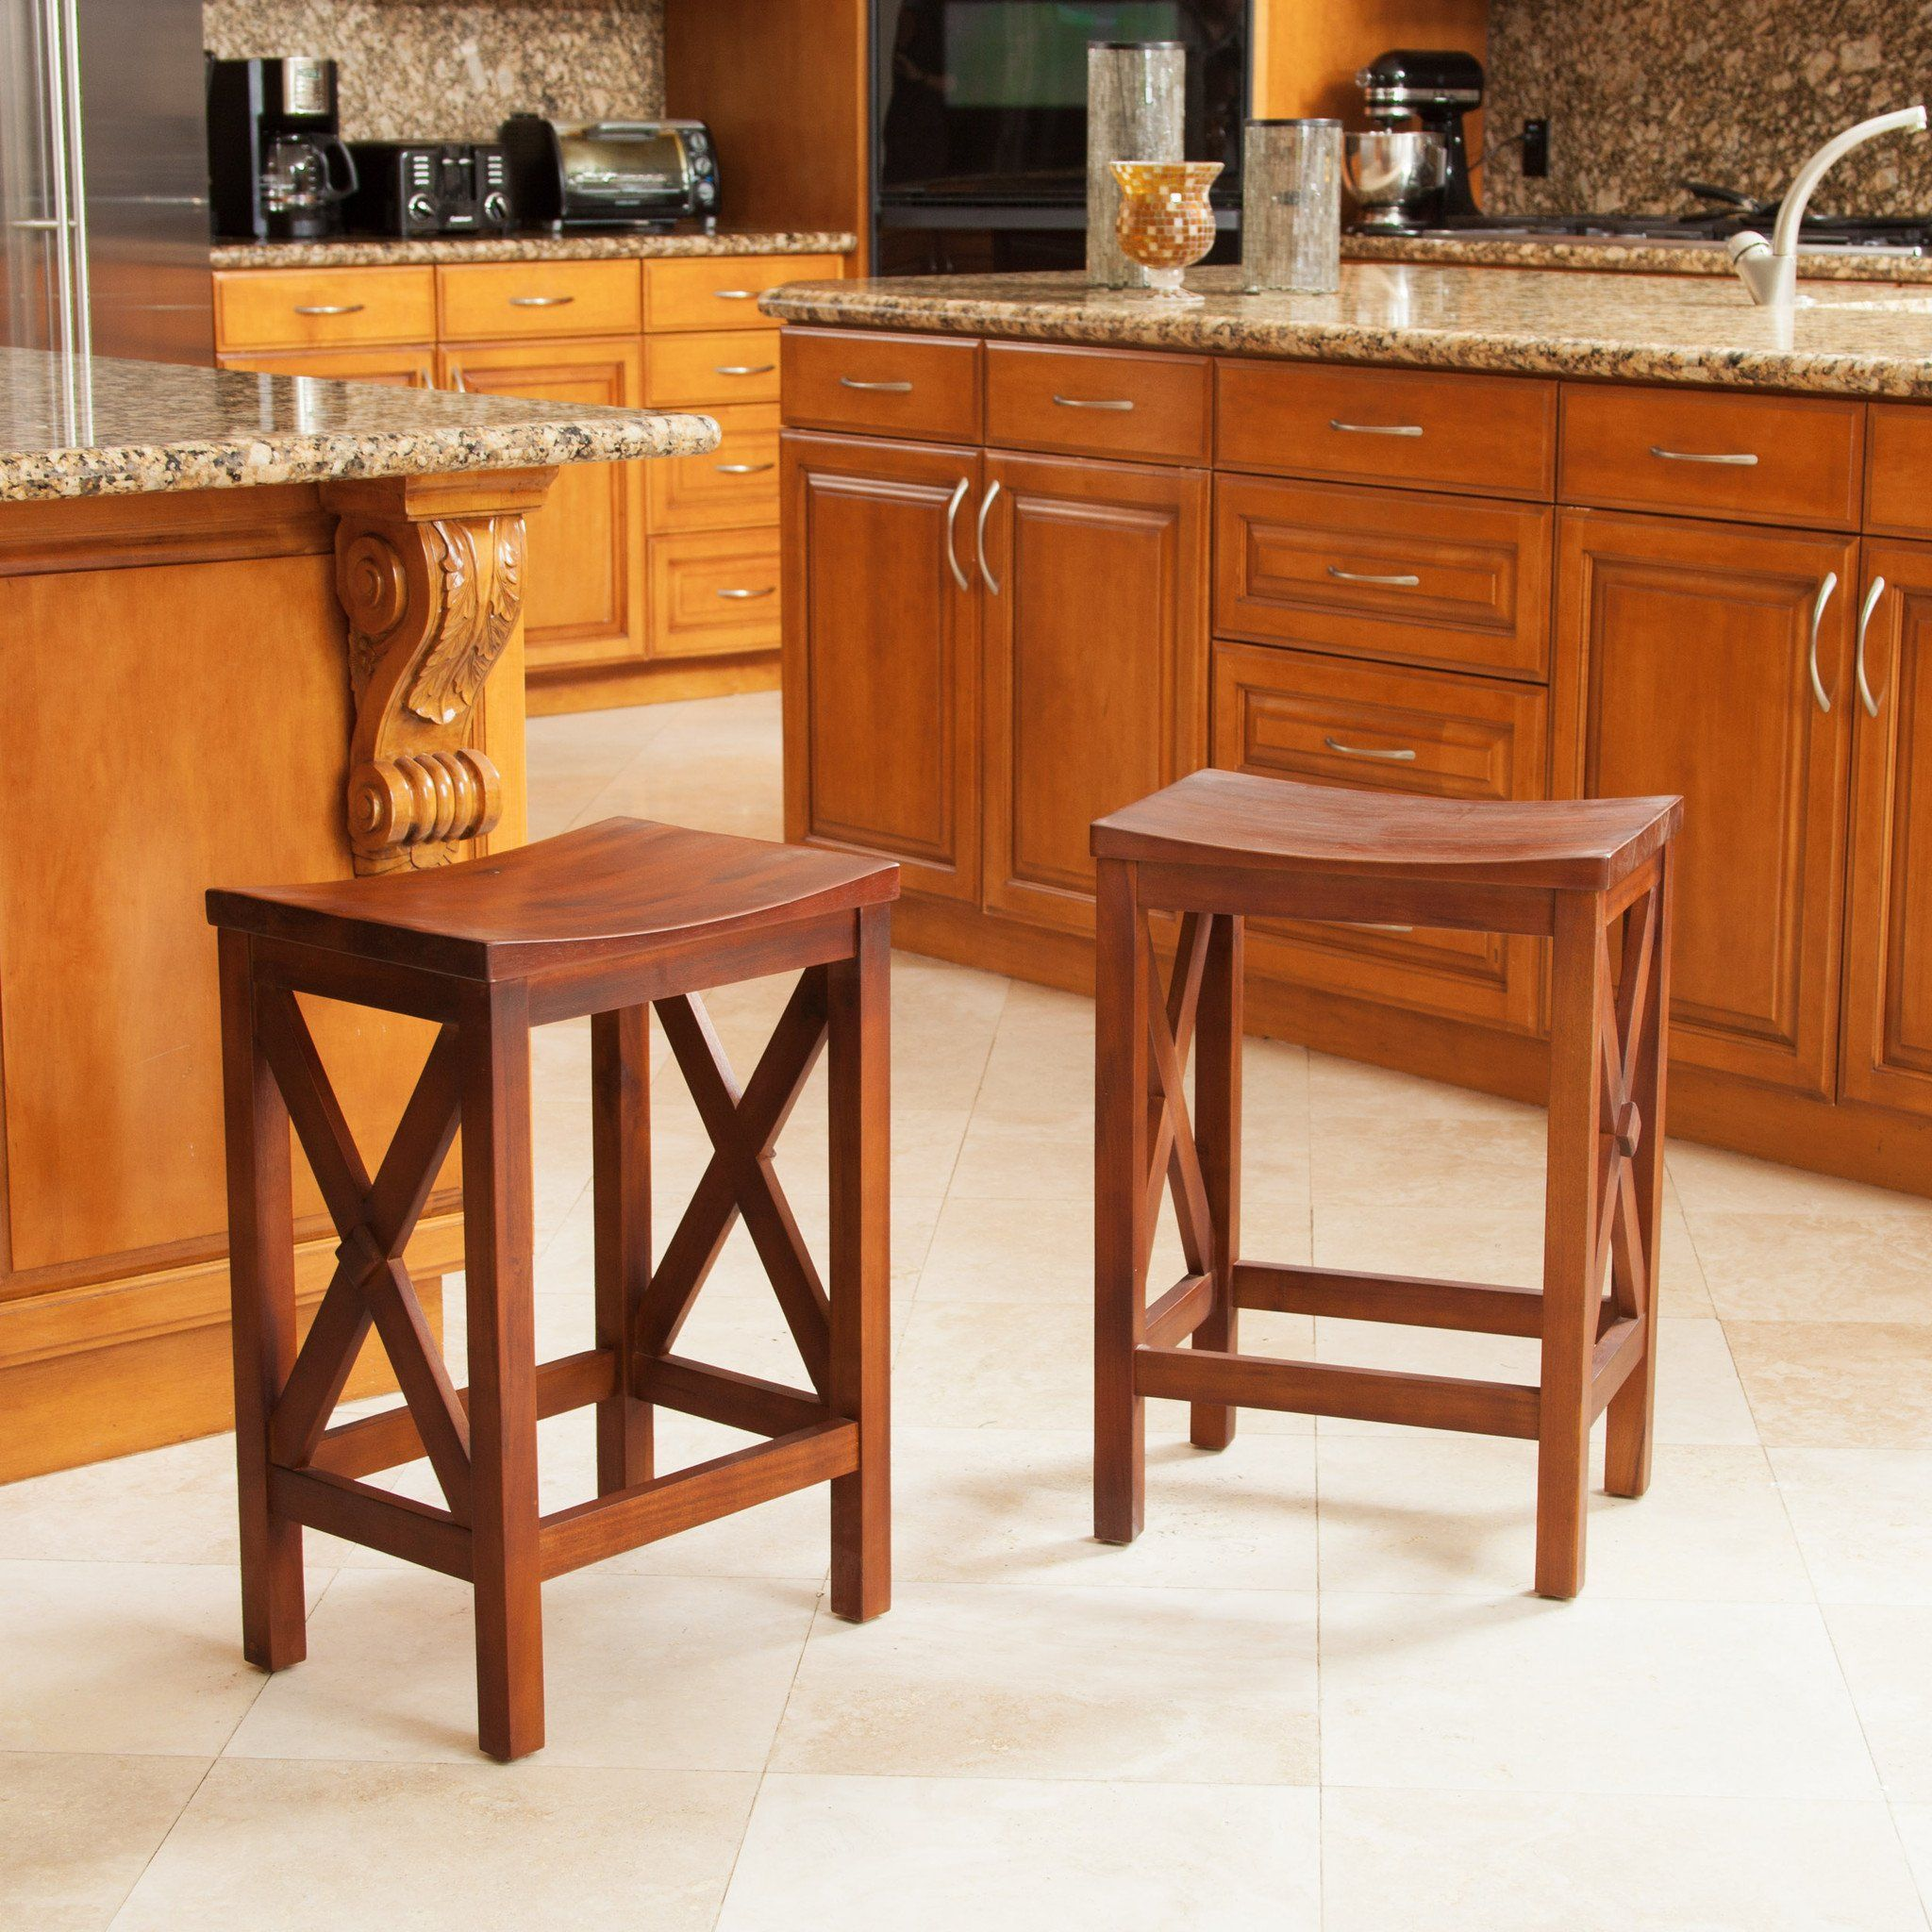 Ad Casselberry Brown Mahogany Counter Stools (Set Of 2) #Deals